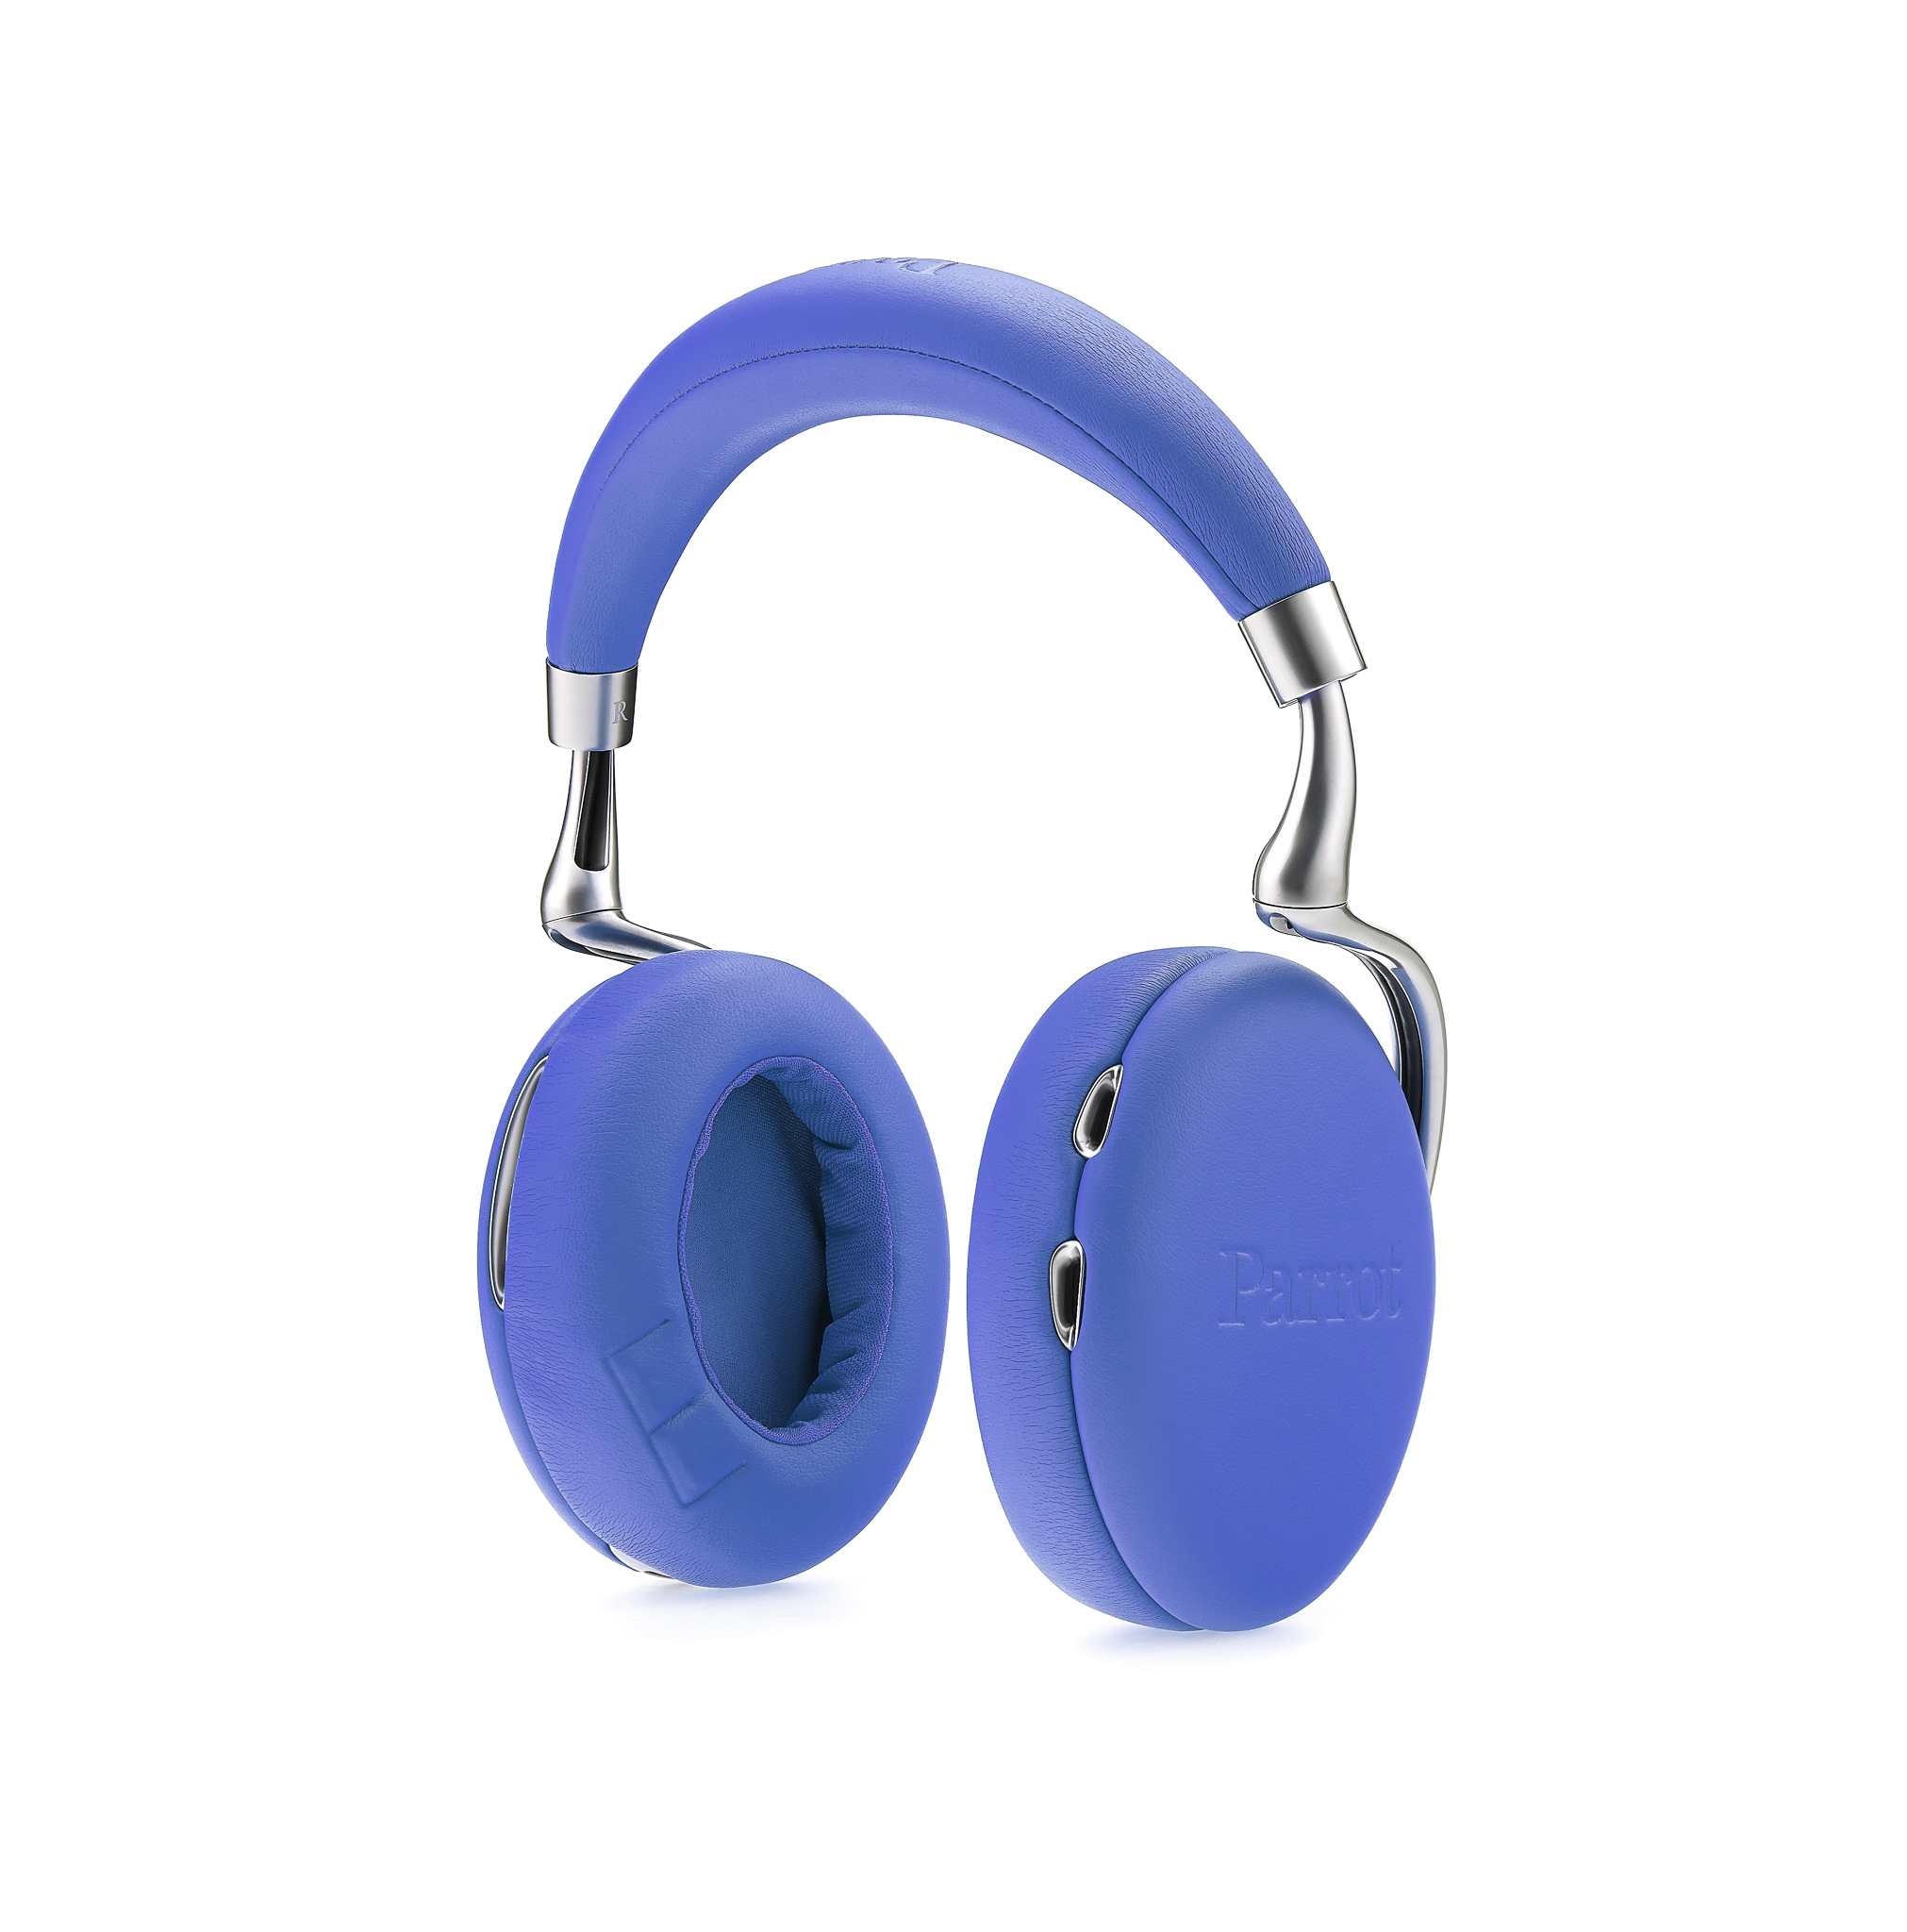 casque parrot zik 2 0 bleu etui de rangement ebay. Black Bedroom Furniture Sets. Home Design Ideas